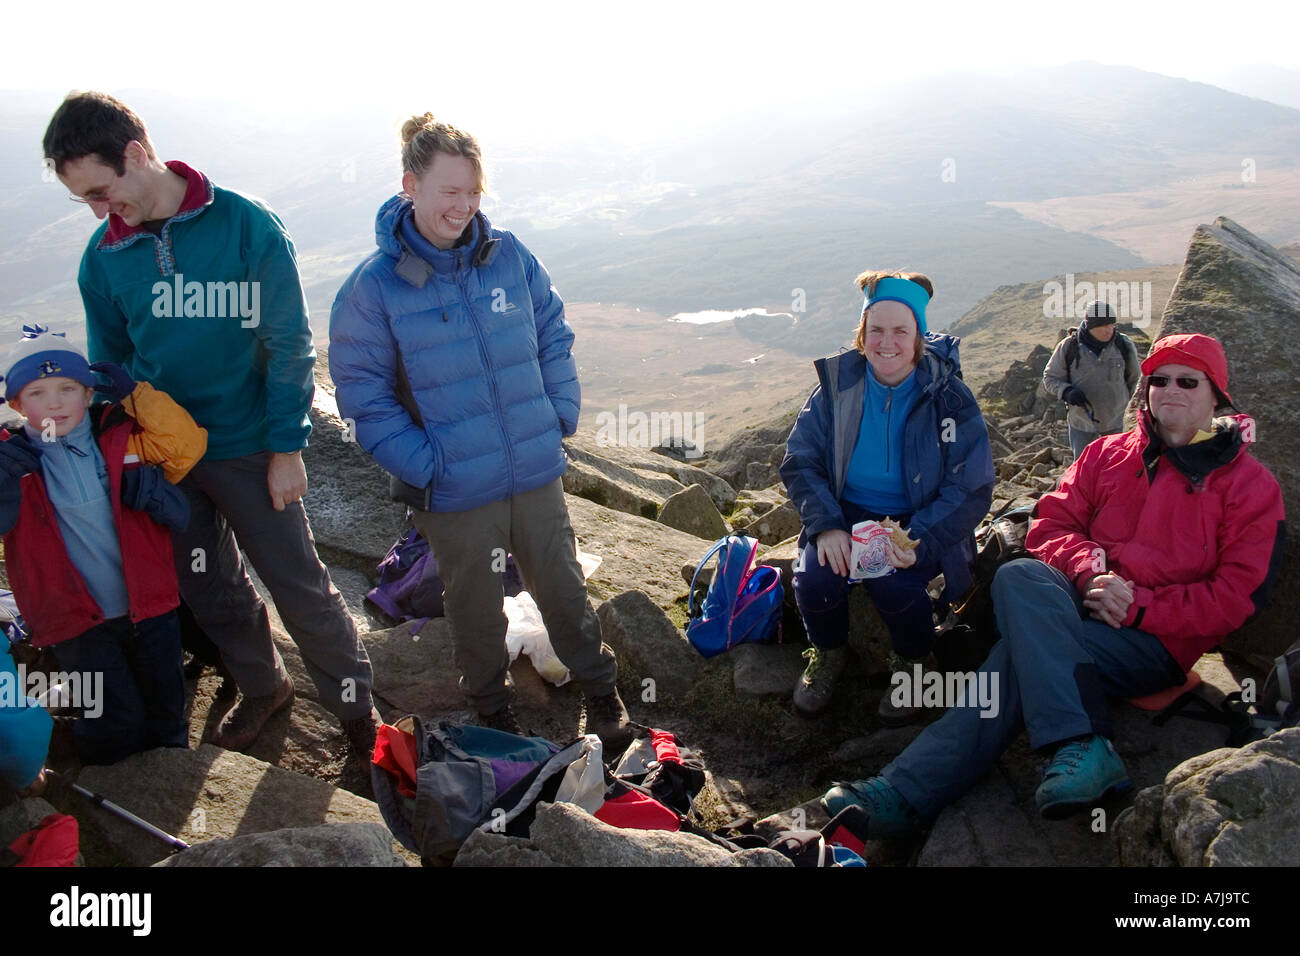 Hillwalkers on the summit of Moel Siabod Snowdonia - Stock Image